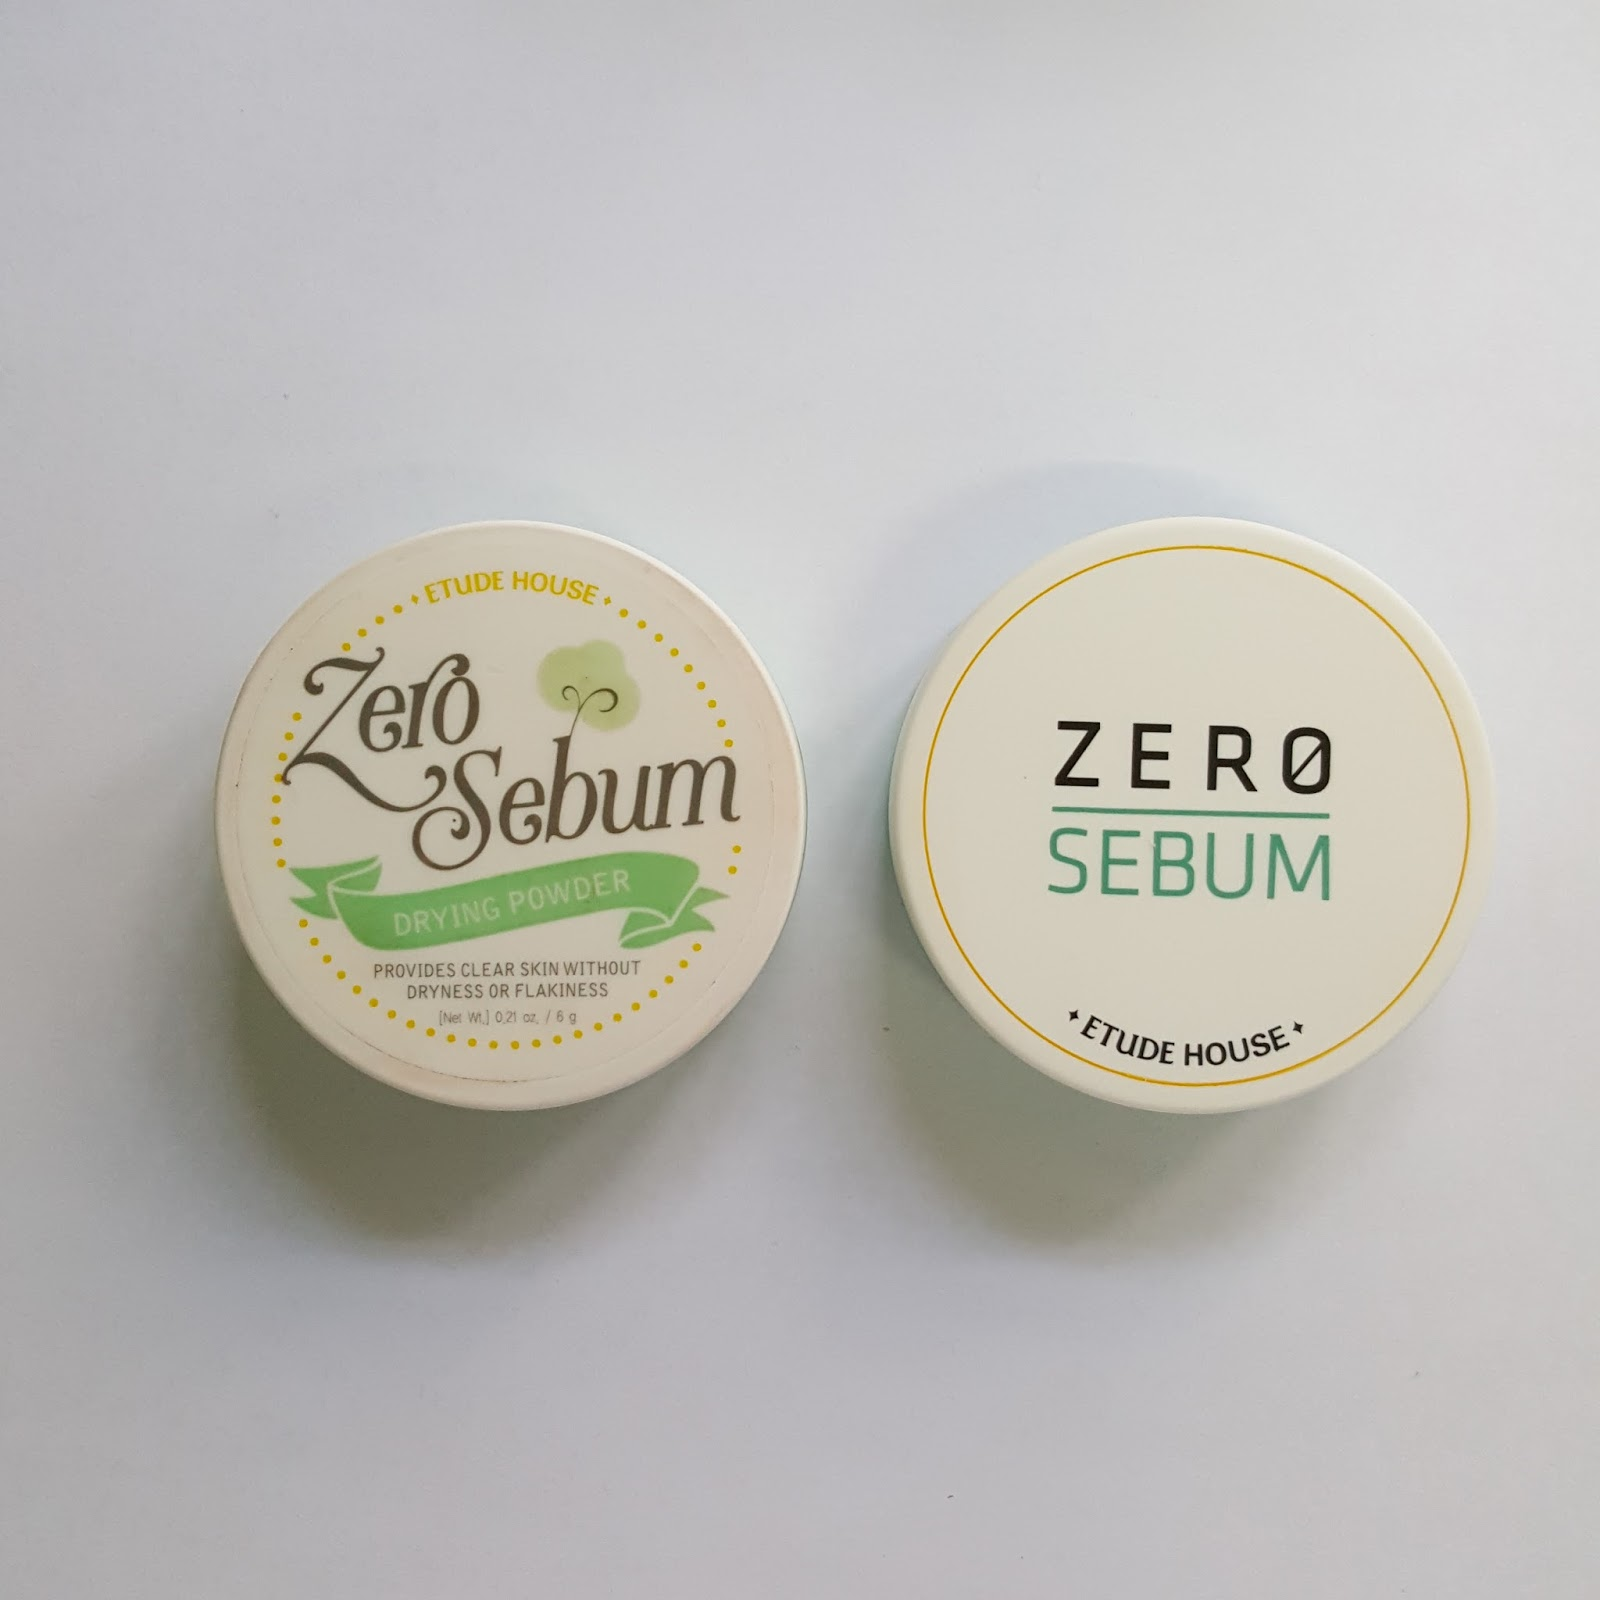 Etude House Zero Sebum Line Drying Powder All Day Matte Gel The Comes In A 6g Circle Case With Puff Inside To Be Honest I Find New Minimalist Design Nicer